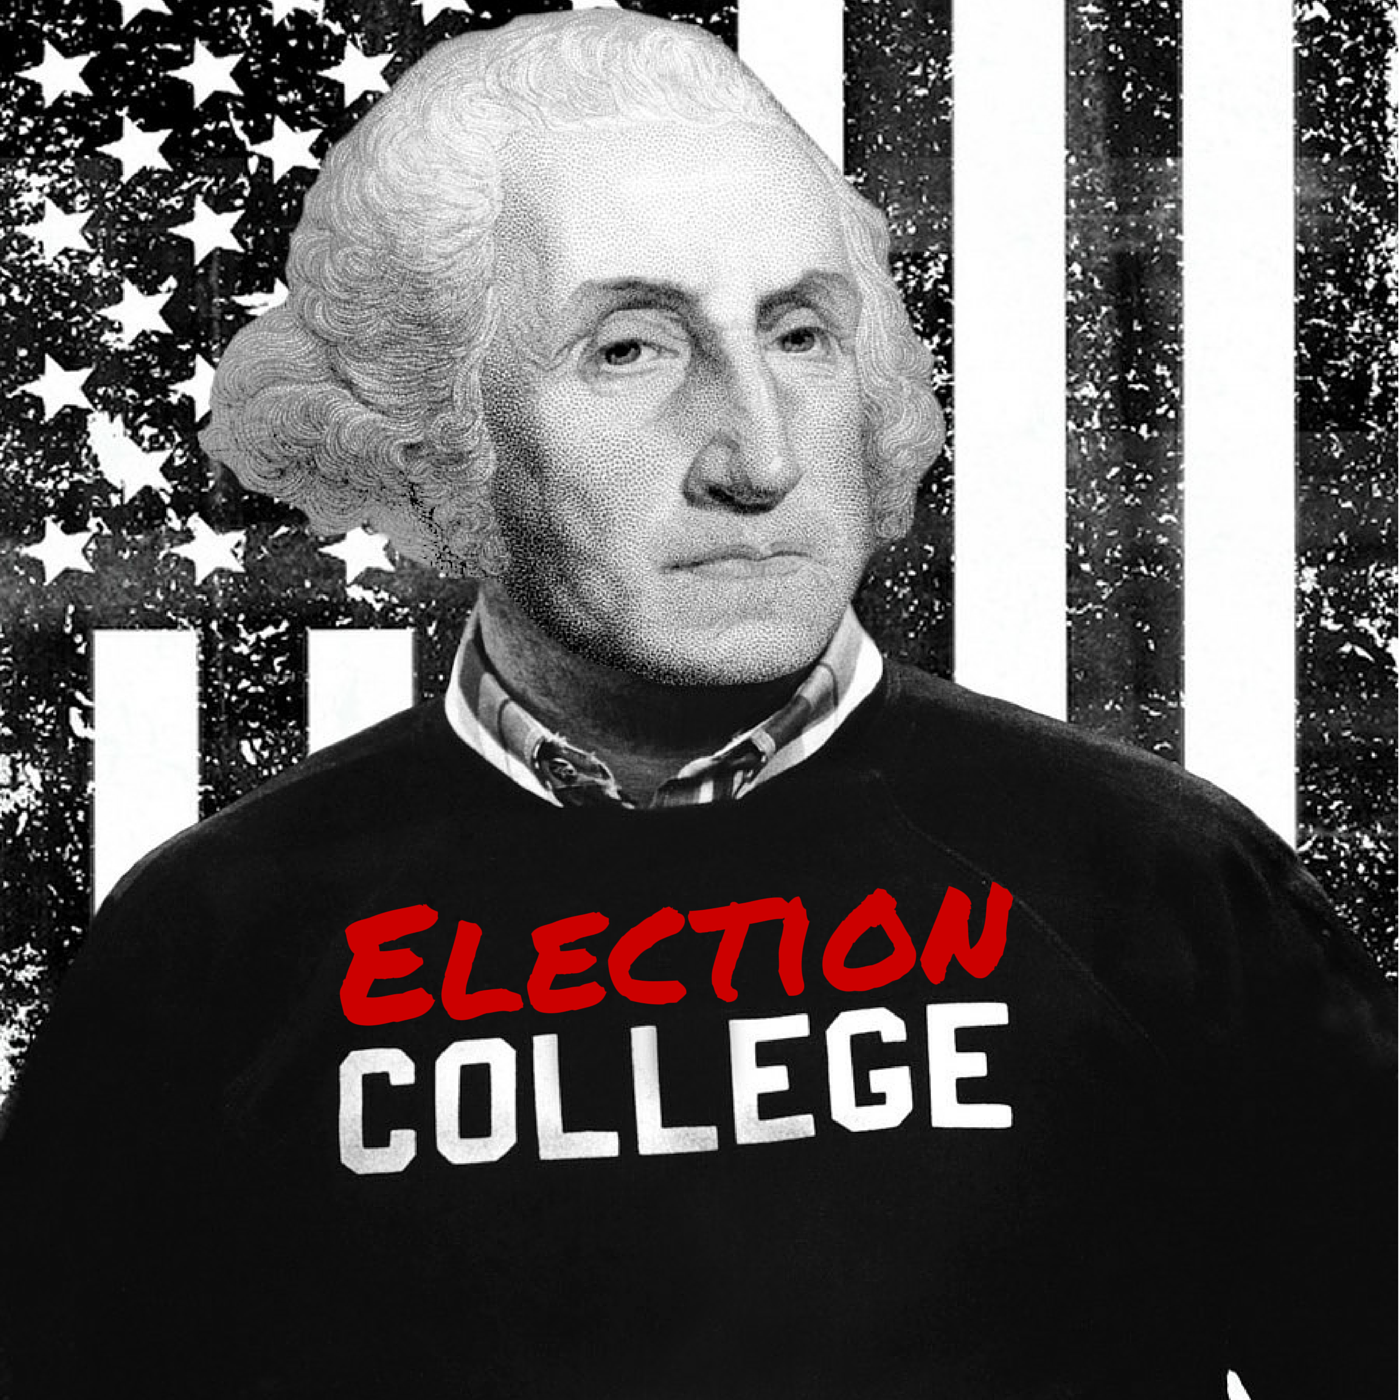 The Great Recession - Election of 2008 | Episode #076 | Election College: United States Presidential Election History